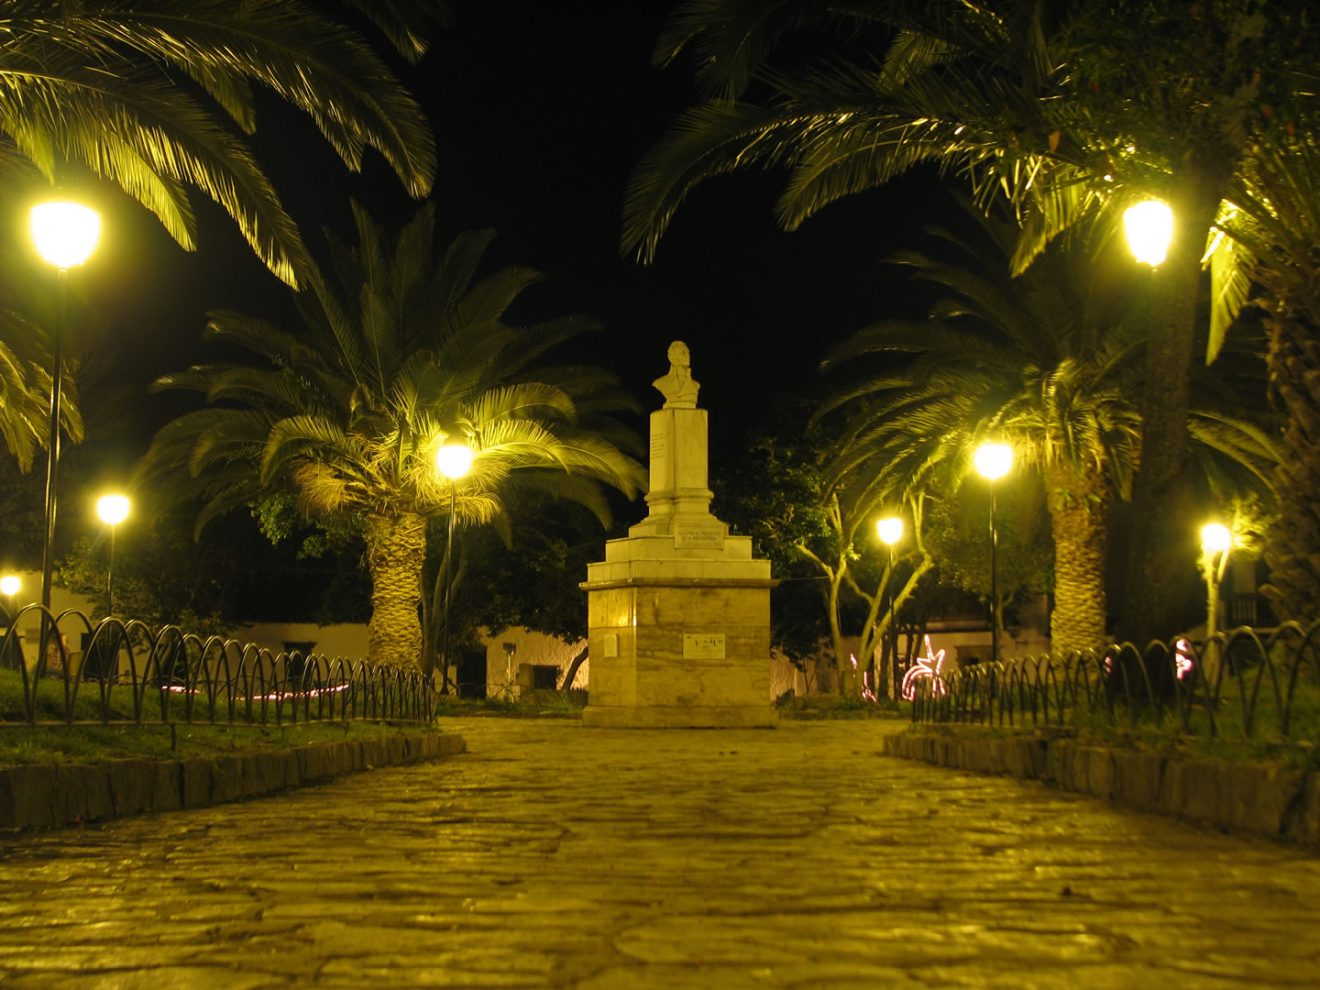 Antonio Nariño Park. Historical-Center-of-Villa-de-Leyva Colombian Highlands.